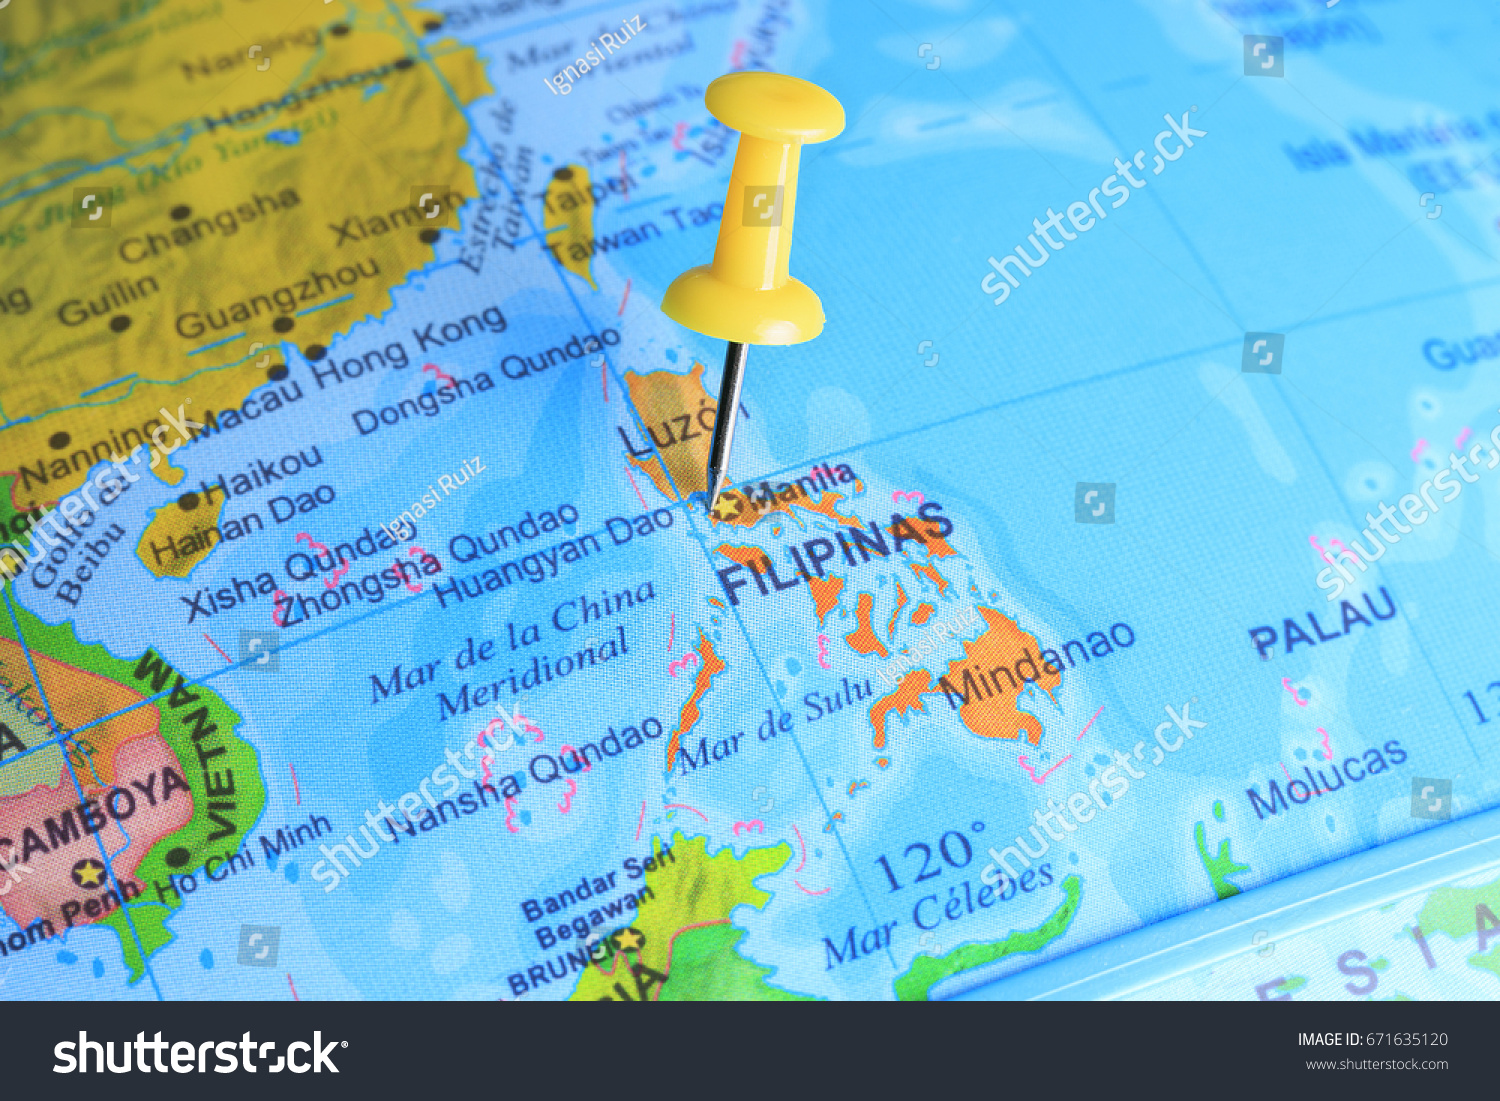 Philippines Pinned On Map Asia Stock Photo Shutterstock - Huangyan map